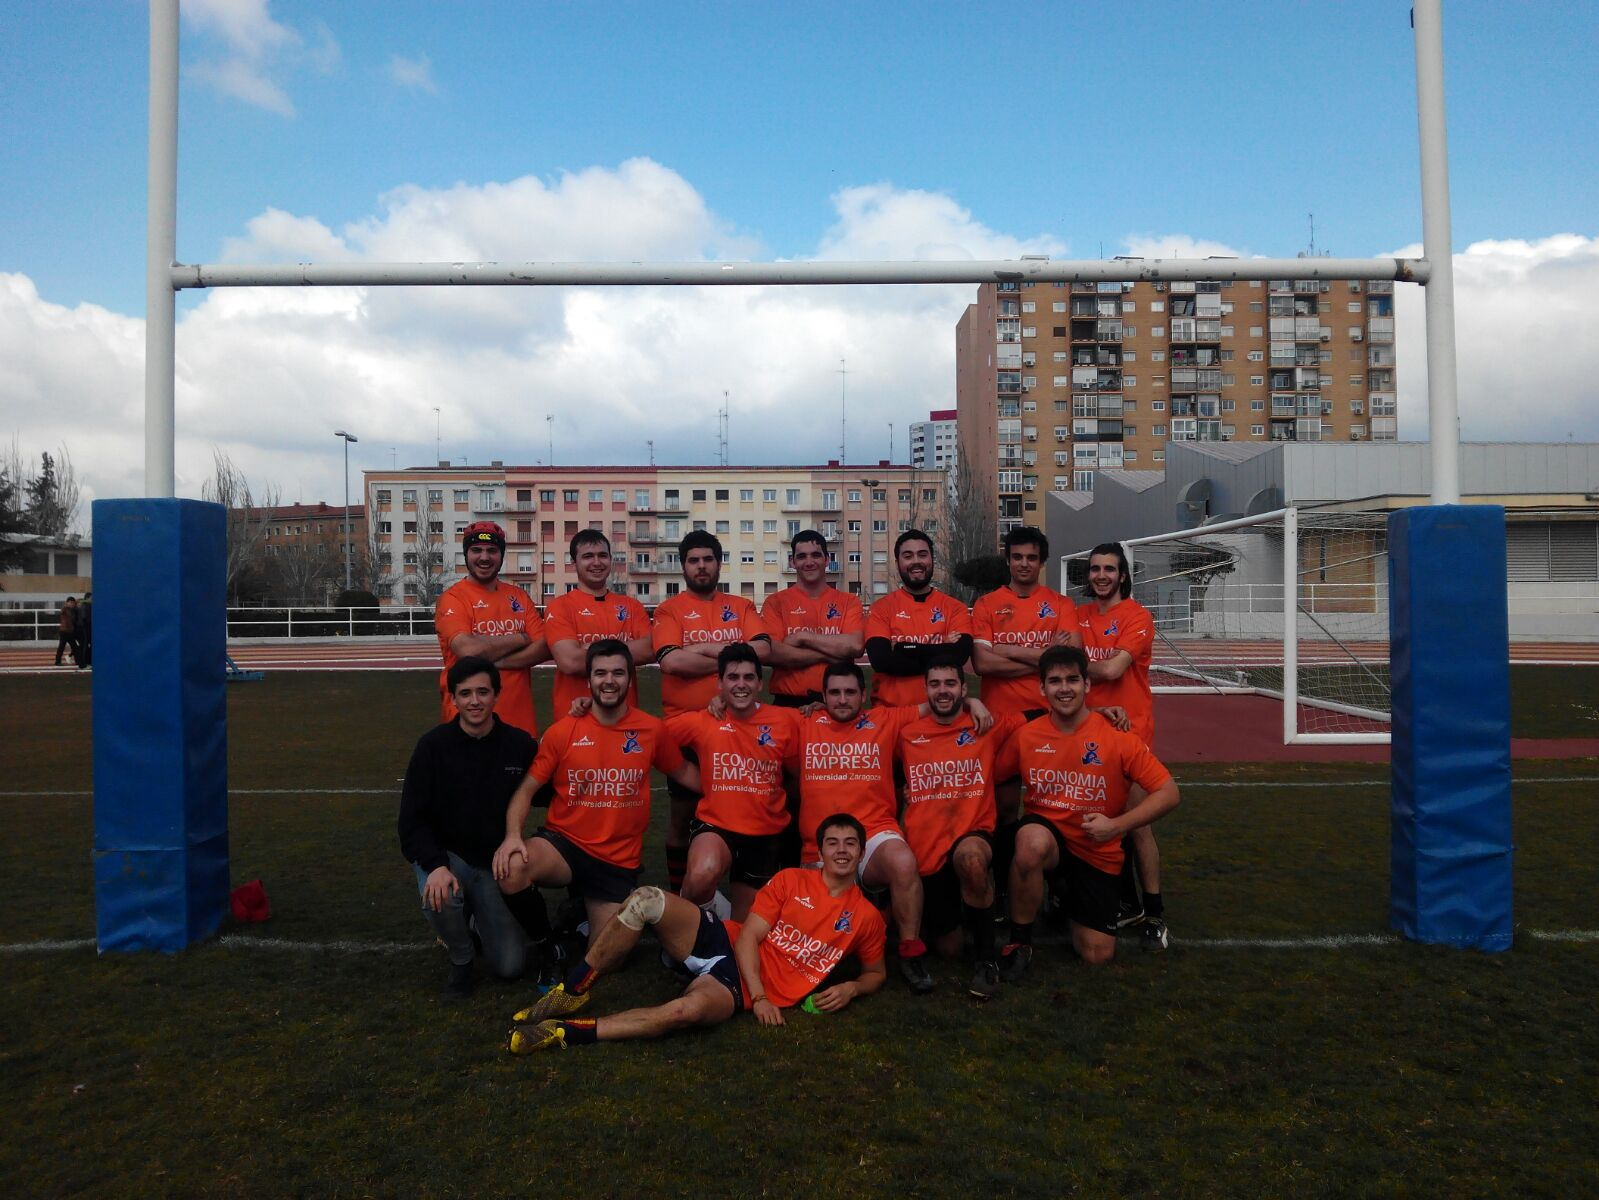 Rugby masculino 2015-2016